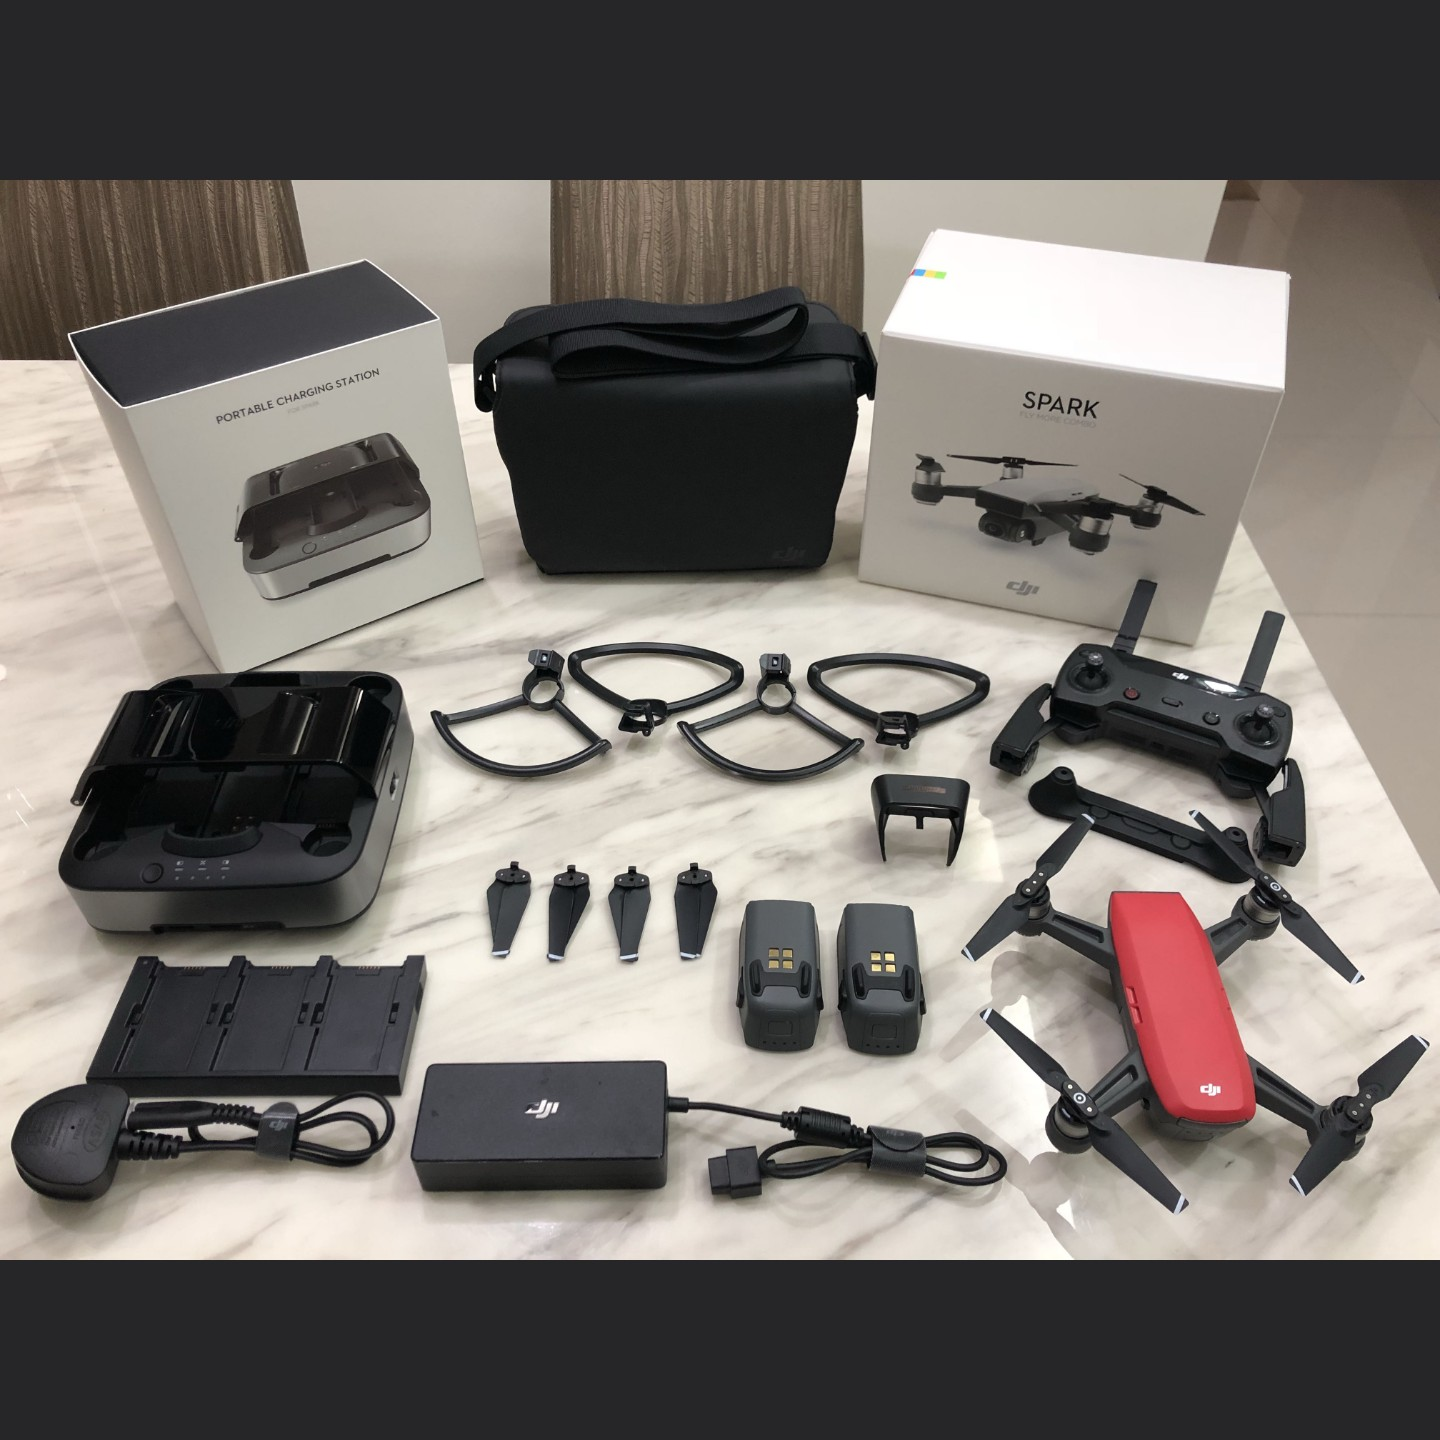 DJI spark flymore combo image